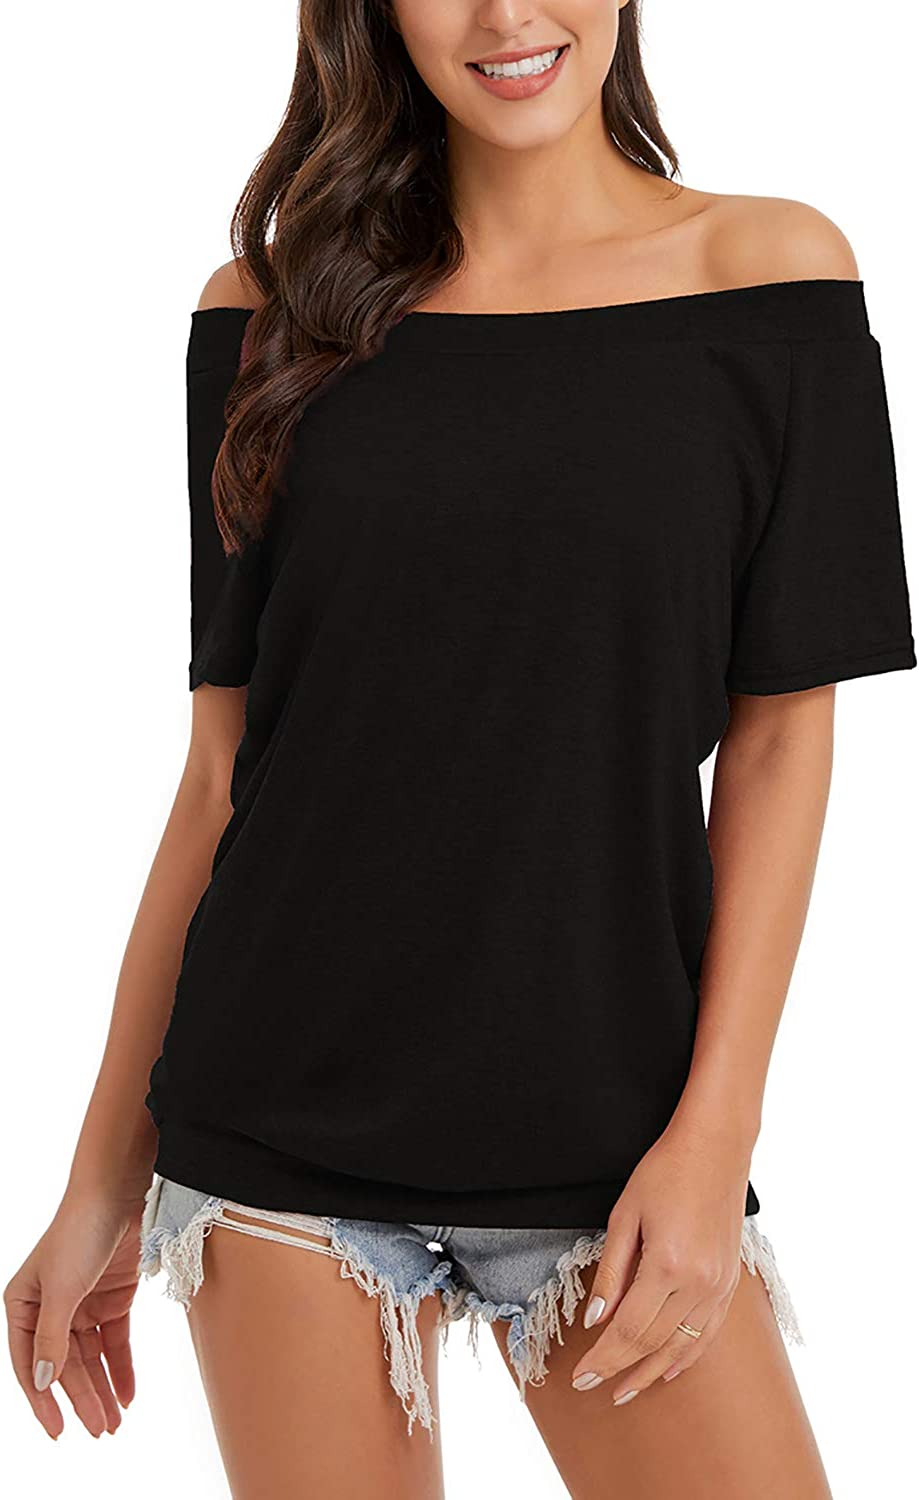 FEKOAFE Women's Summer Sexy Off The Shoulder Tops Casual Short Sleeve Shirts